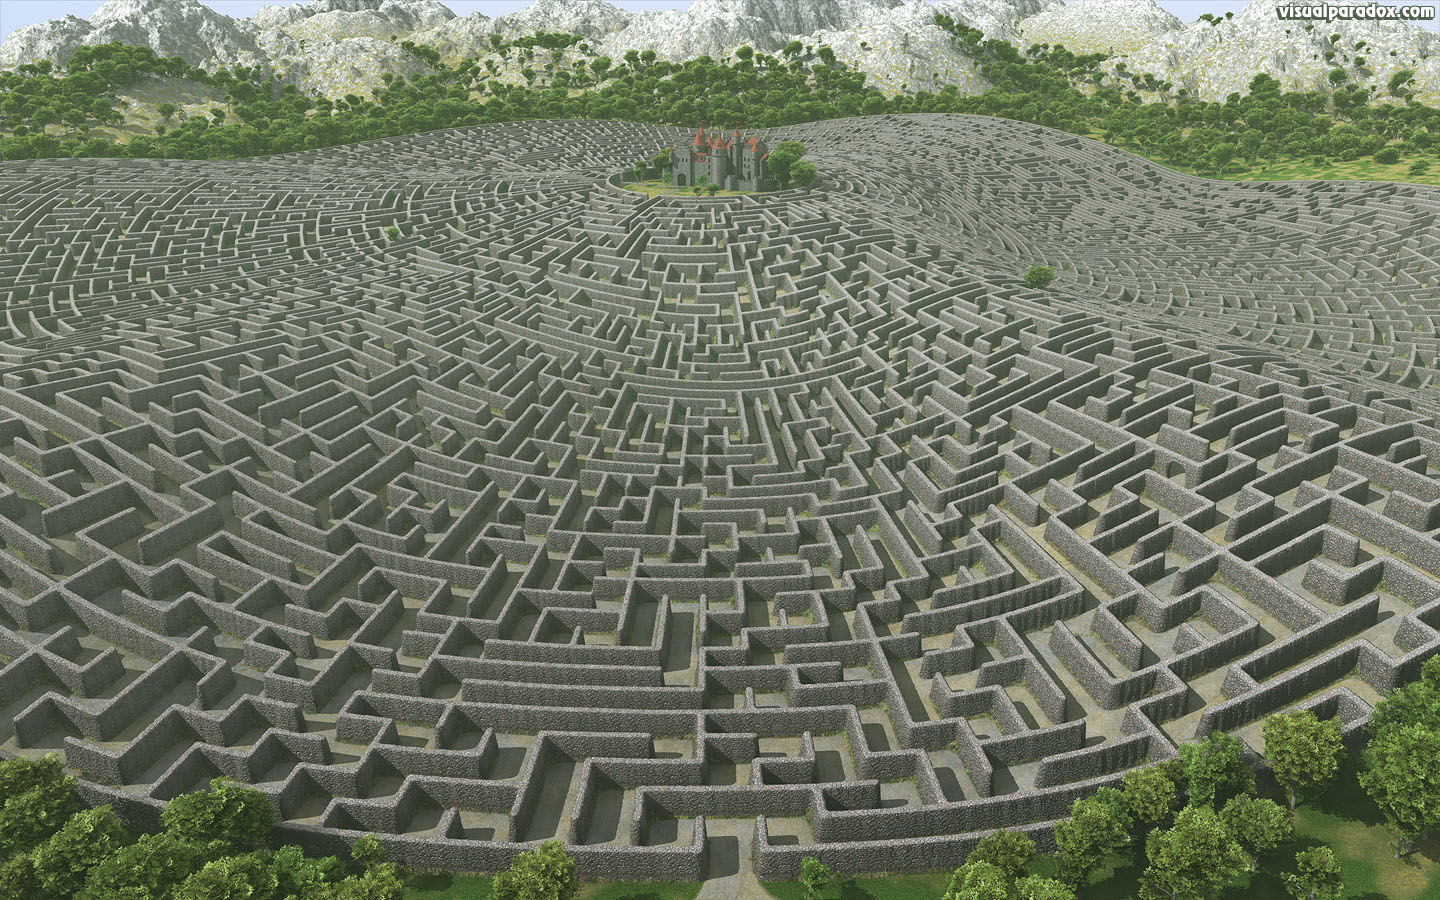 castle, walls, maze, labyrinth, fortress, manor, estate, fantasy, lost, defense, defend, protected, 3d, wallpaper